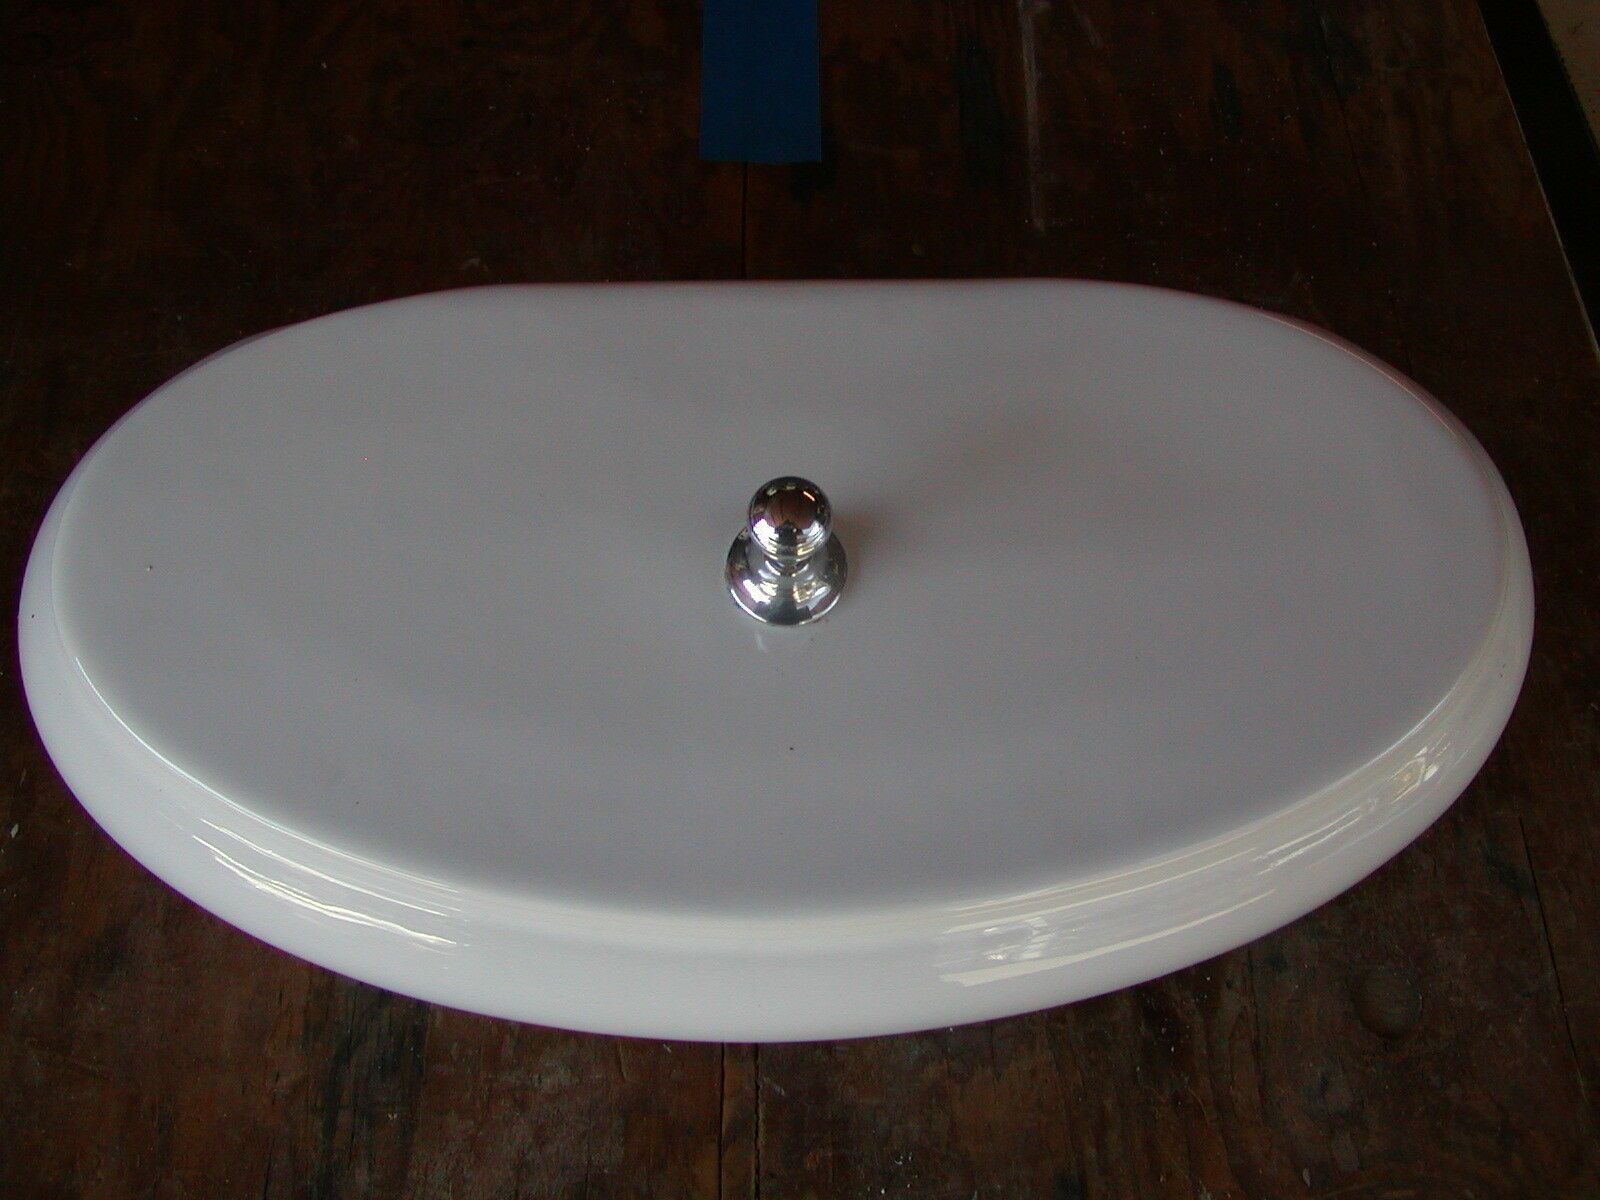 Kohler 83834 Toilet Tank Lid With Chrome Pull Lever Included Almond 6a Toilets Ideas Of Toilets Toilets In 2020 Toilet Tank Lids Toilet Tank Toto Toilet